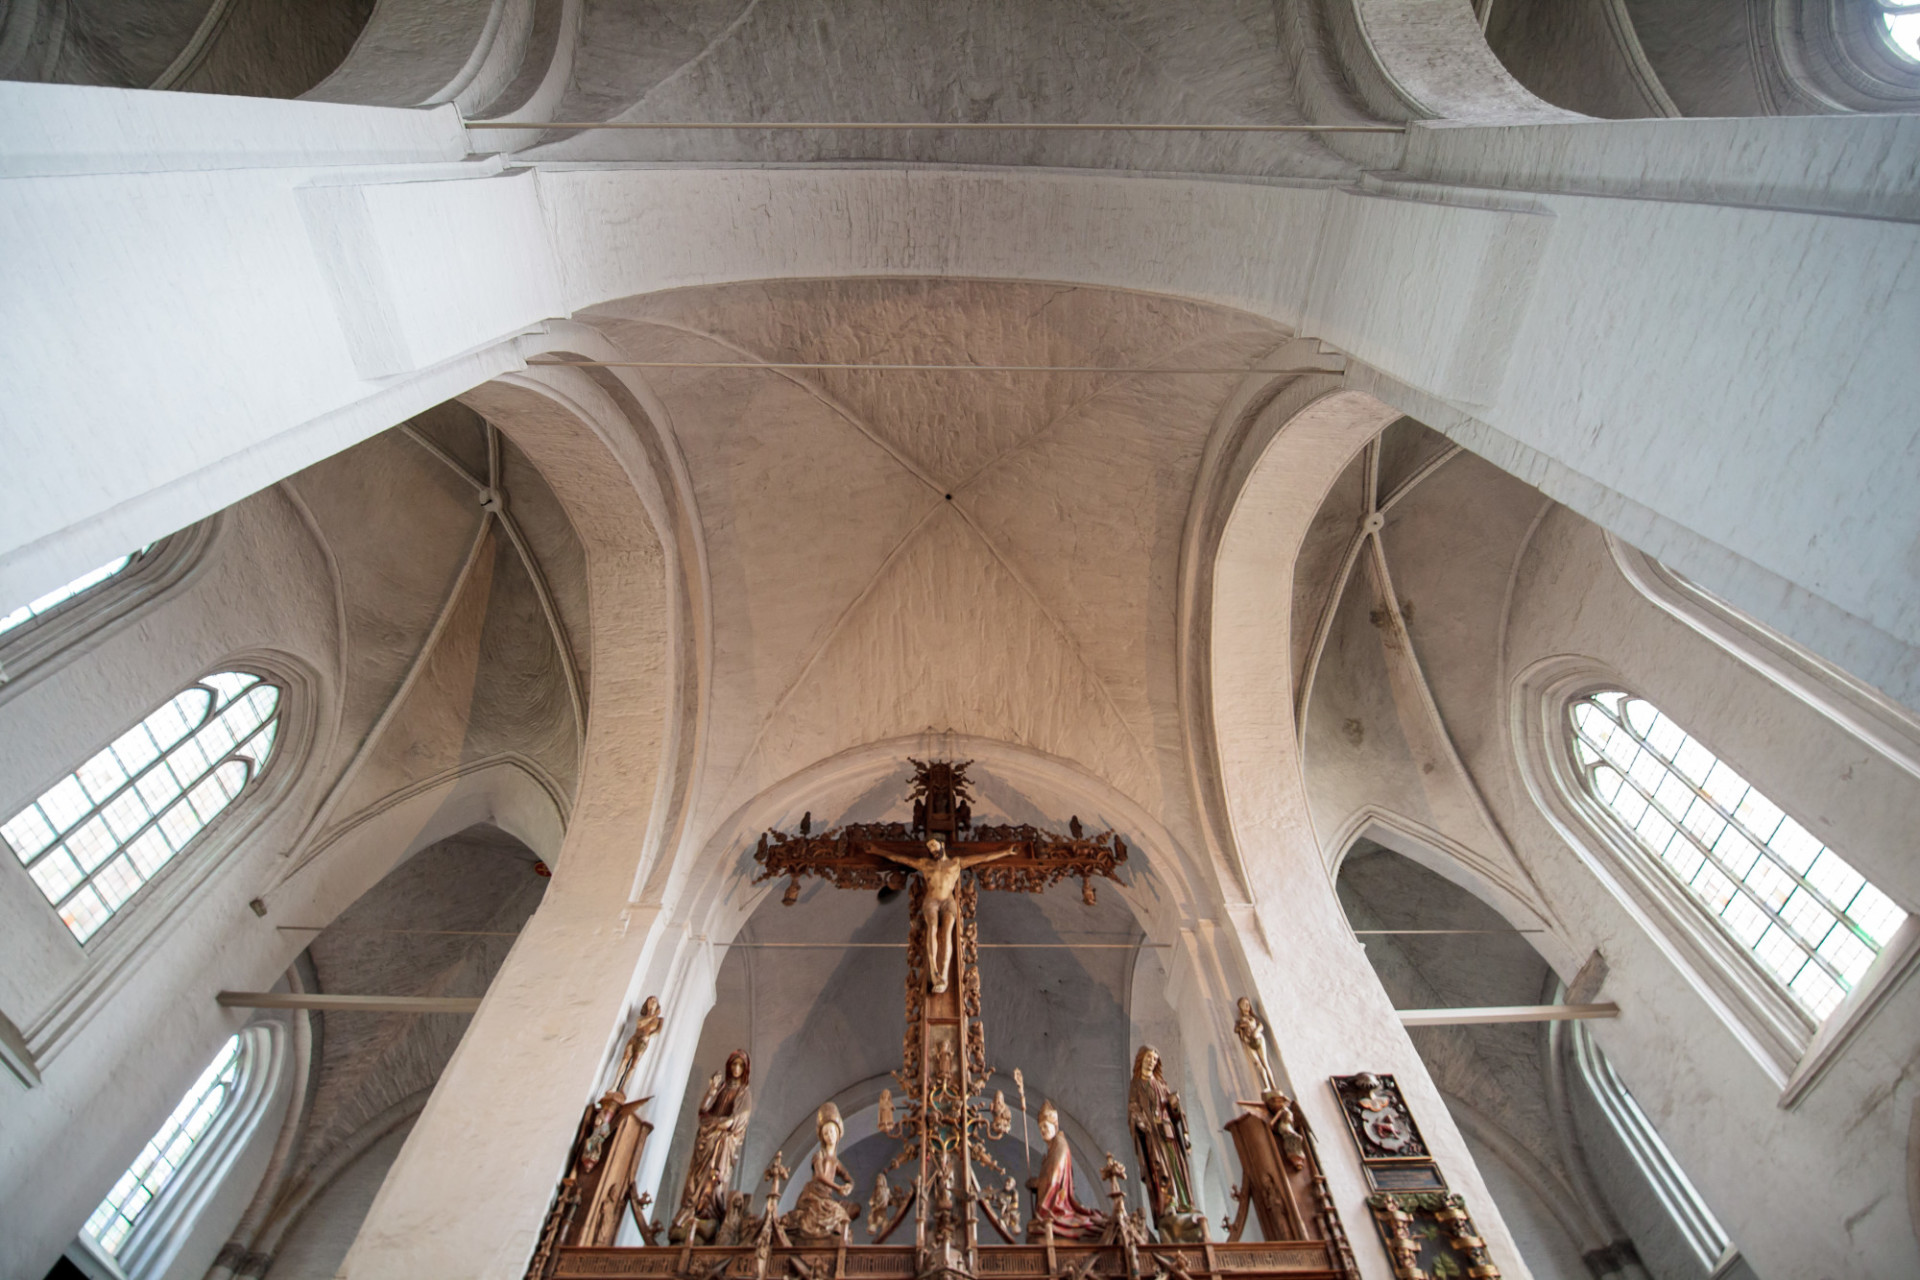 Wonderful architecture of the cathedral in Lübeck